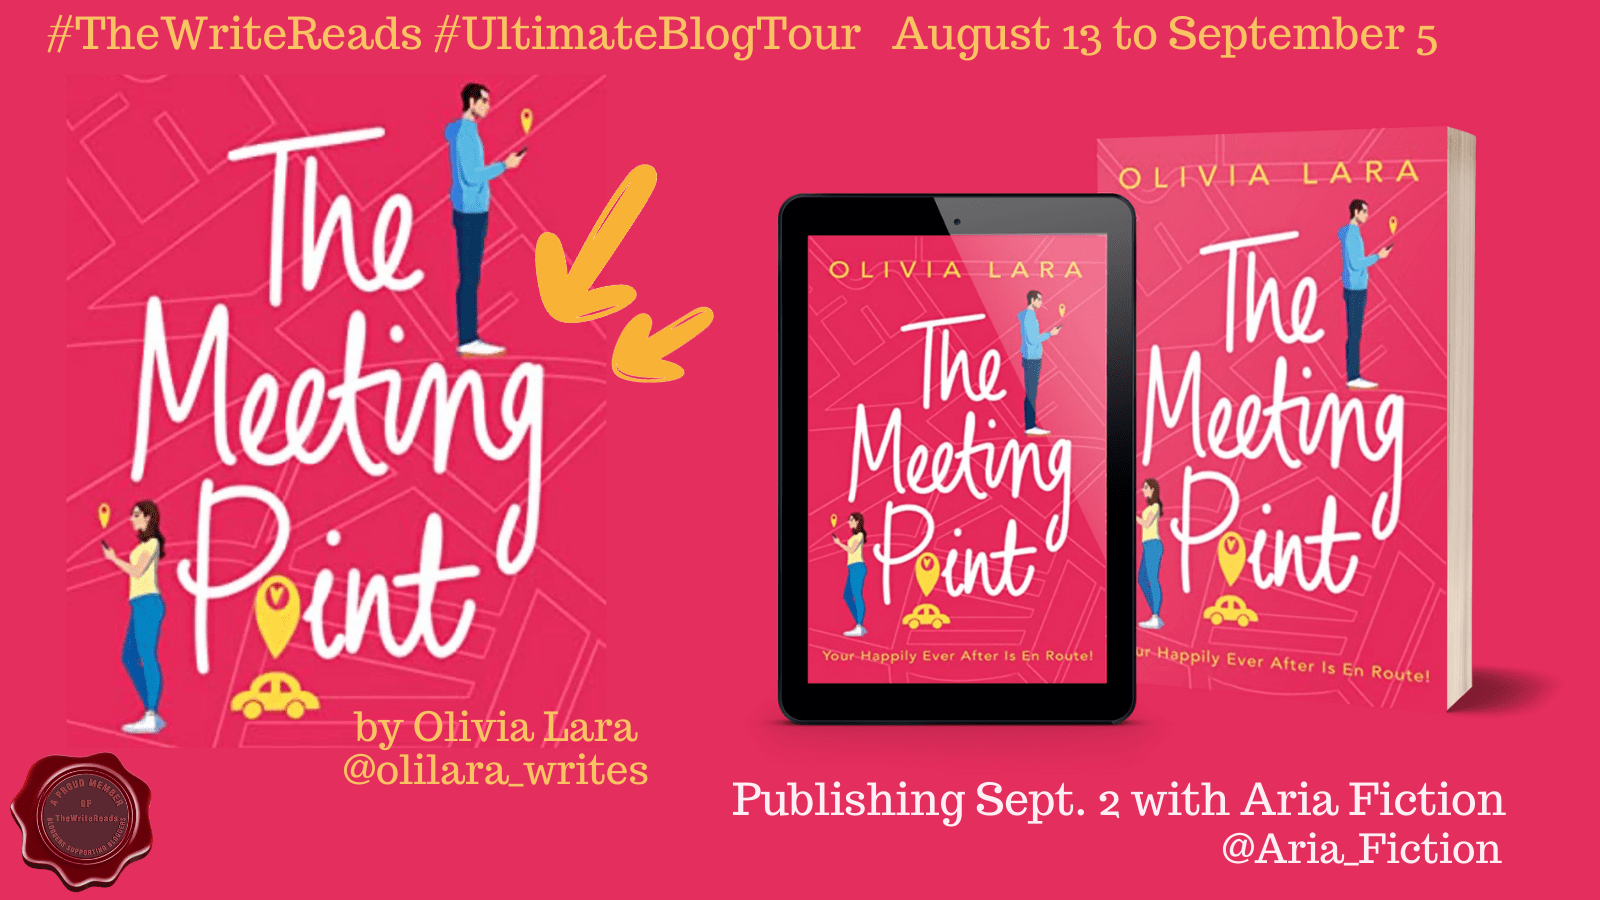 BLOG TOUR: The Meeting Point by Olivia Lara